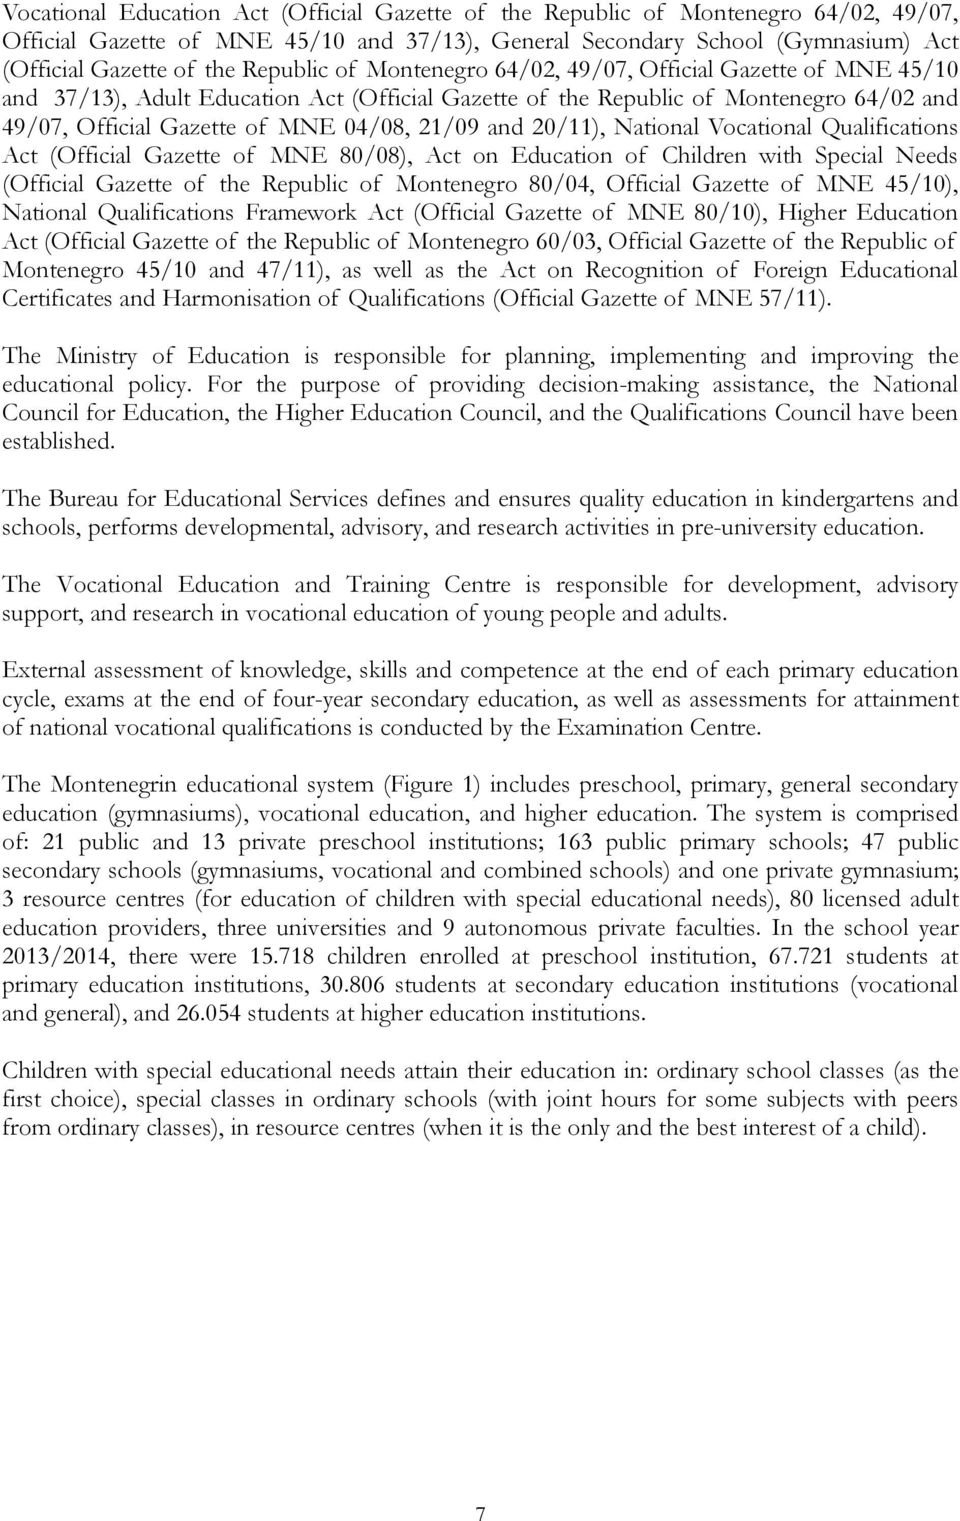 20/11), National Qualifications Act (Official Gazette of MNE 80/08), Act on Education of Children with Special Needs (Official Gazette of the Republic of Montenegro 80/04, Official Gazette of MNE